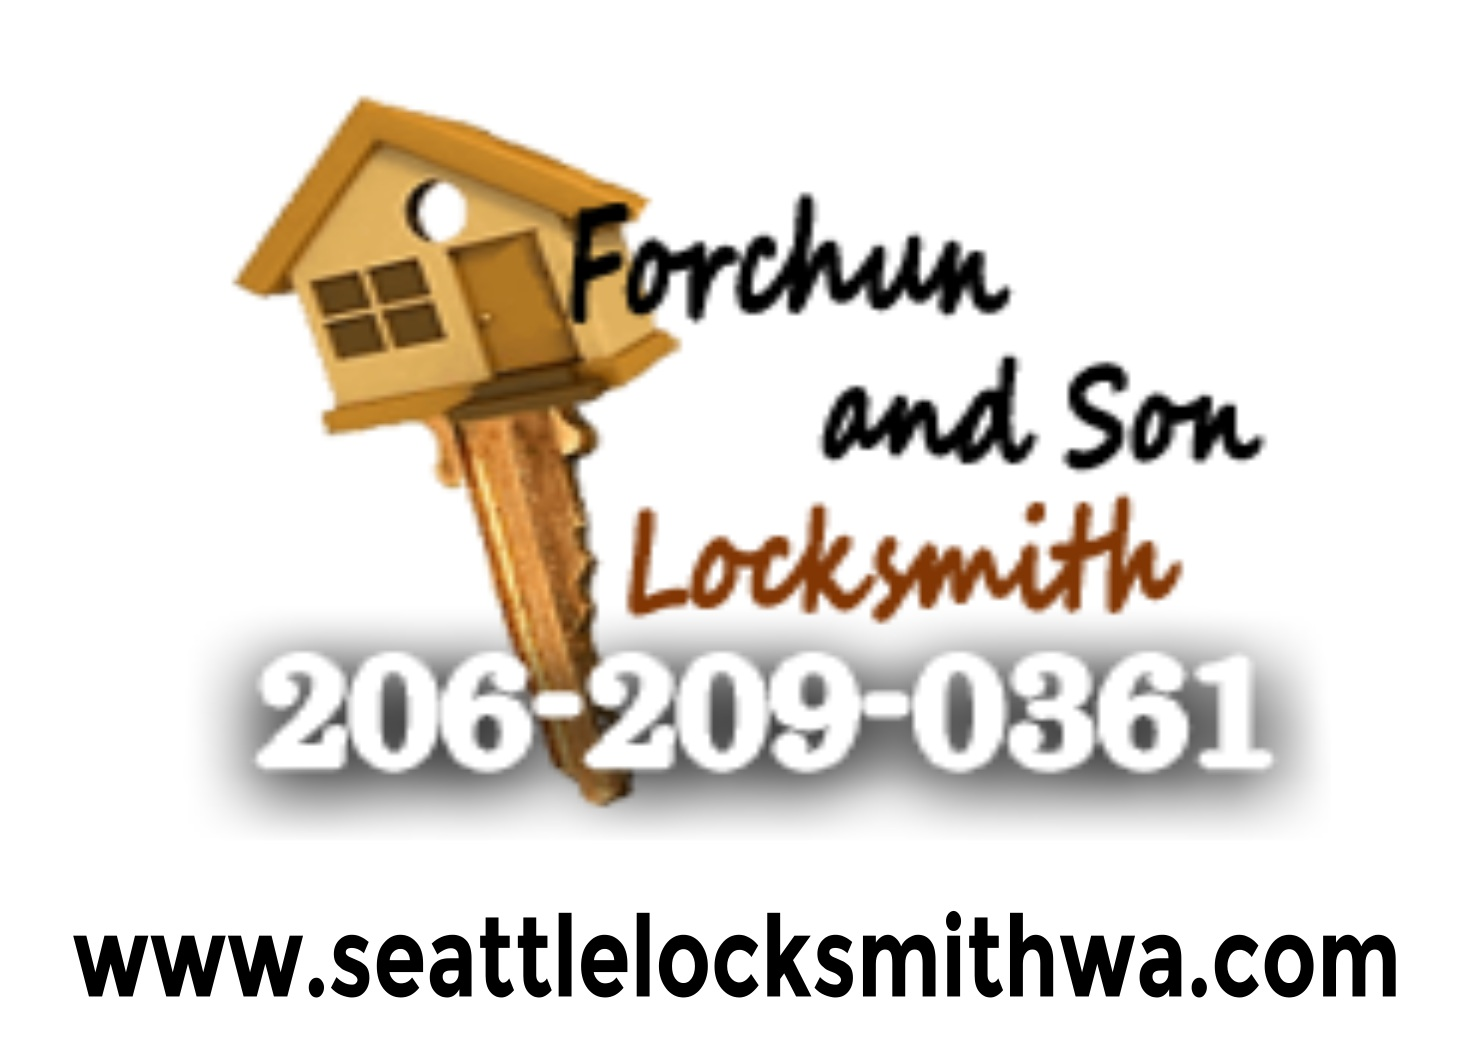 Forchun and Son Locksmith